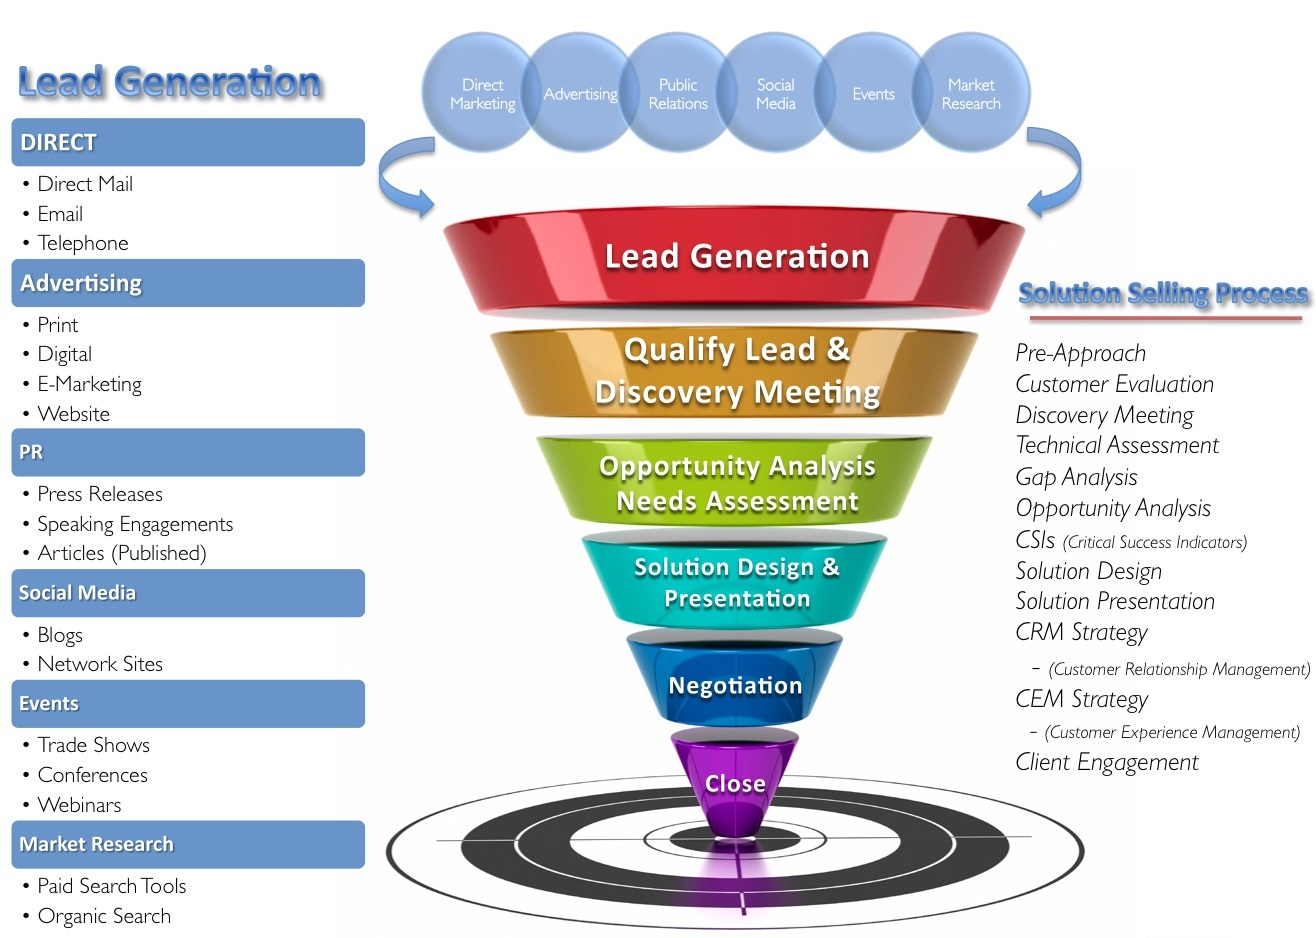 Bittarget Lead Generation Services